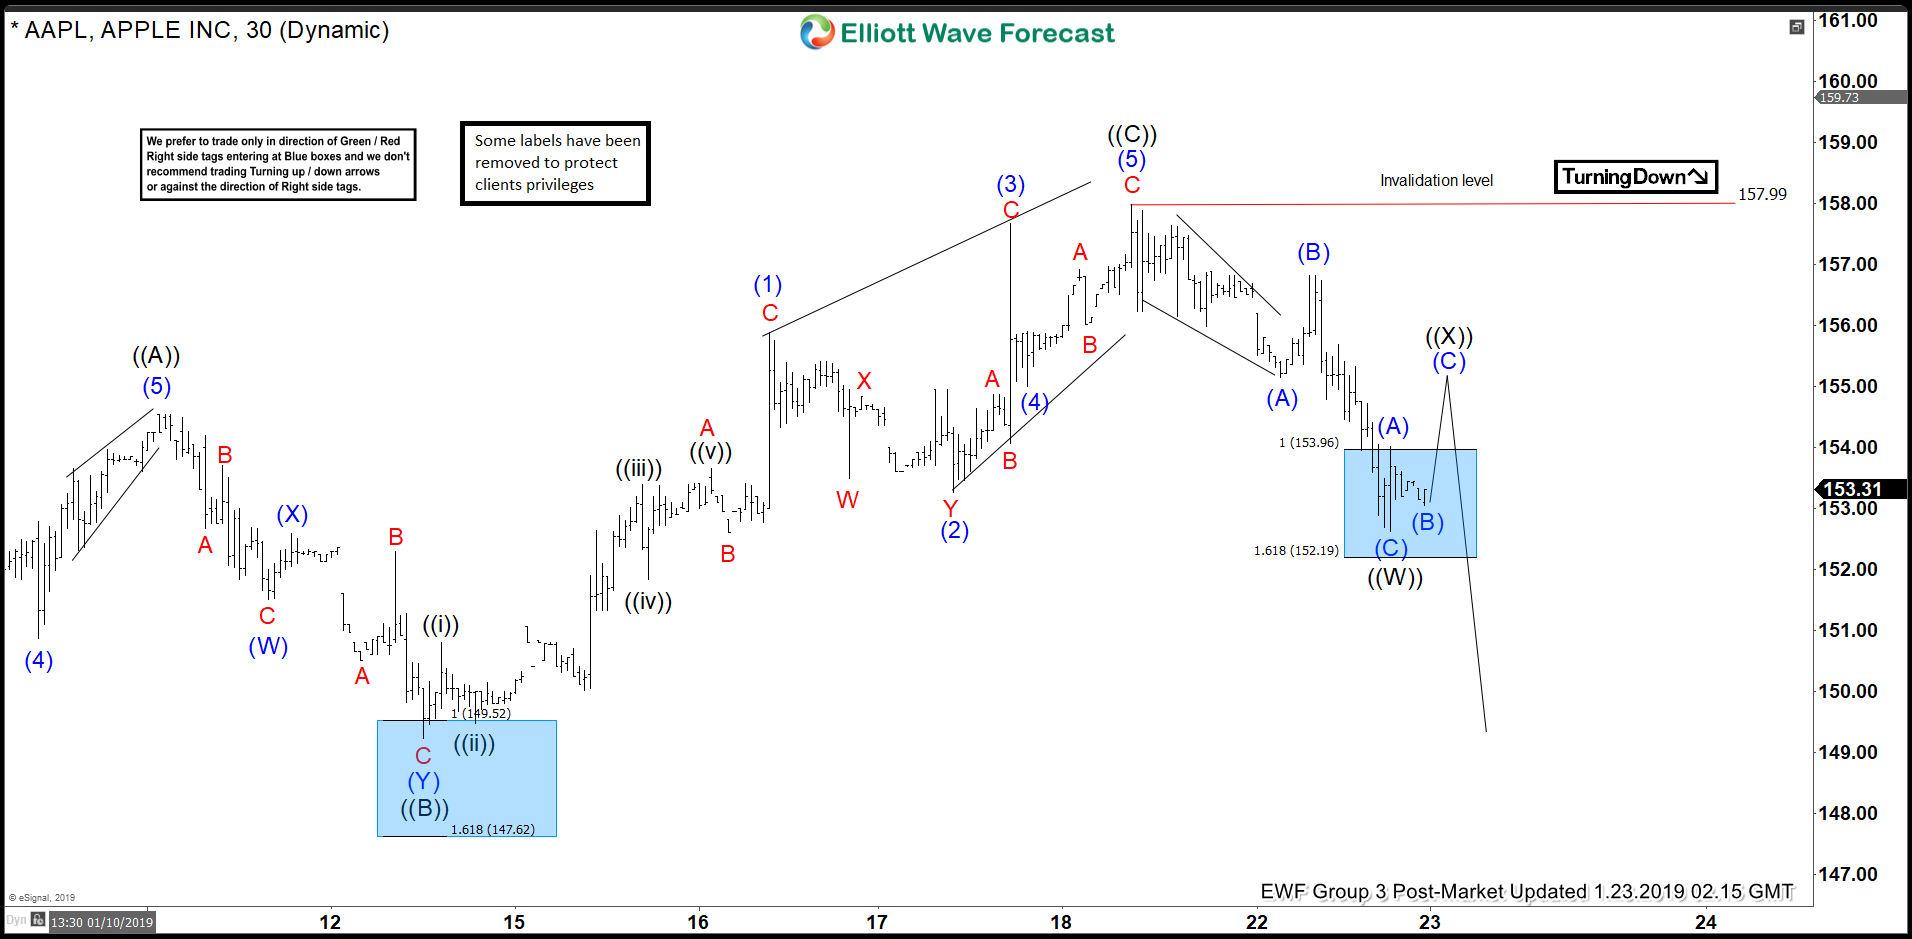 Apple Forecasting The Elliott Wave Bounce Higher